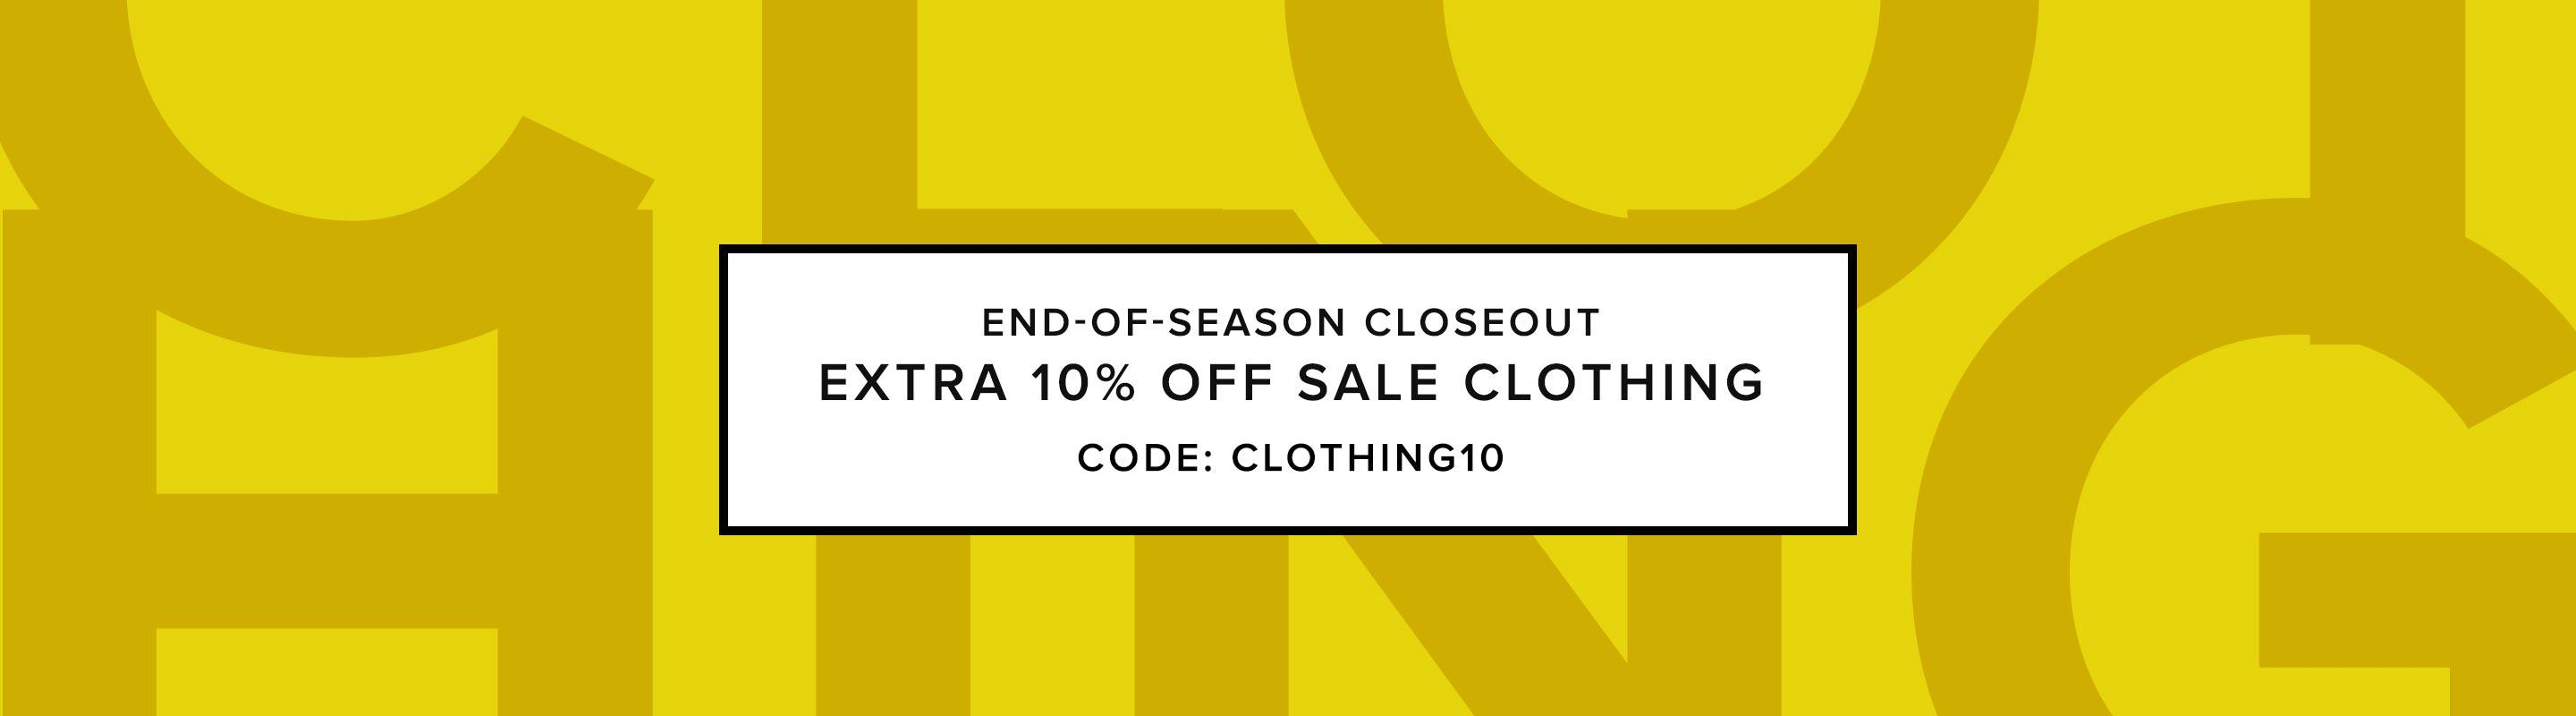 End-of-Season Closeout: Clothing